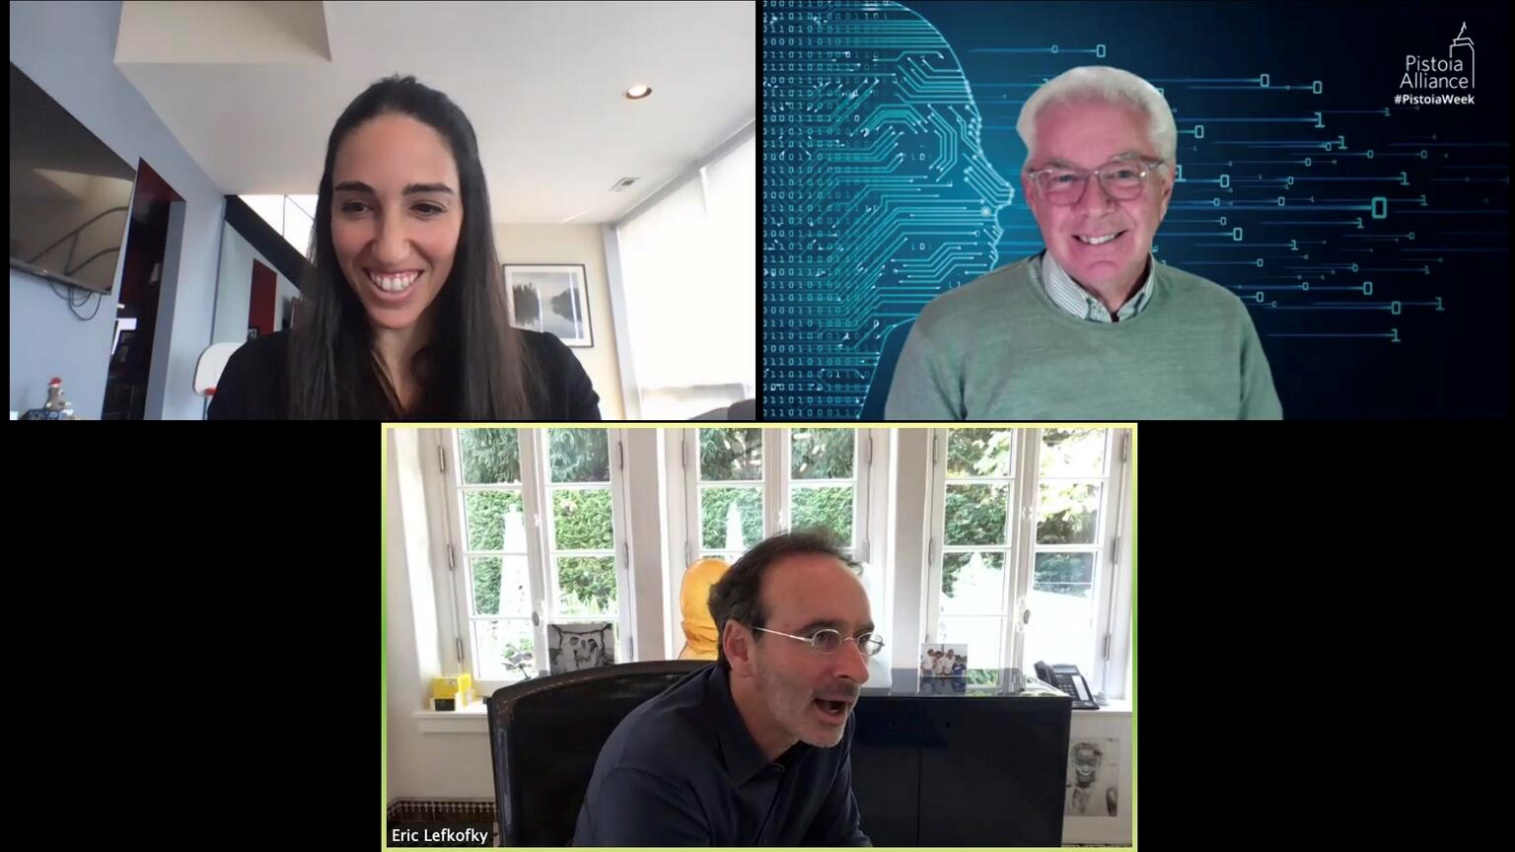 Tempus CEO in a video conference with other executives